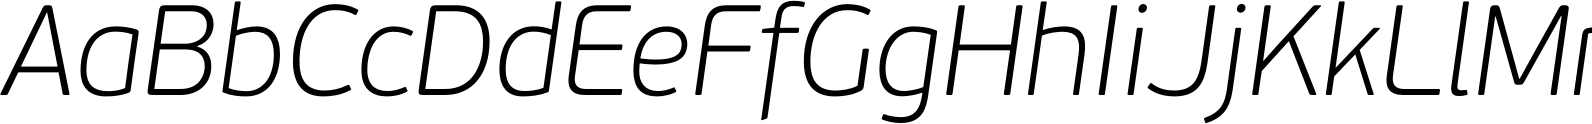 PFBeauSansPro ThinItalic